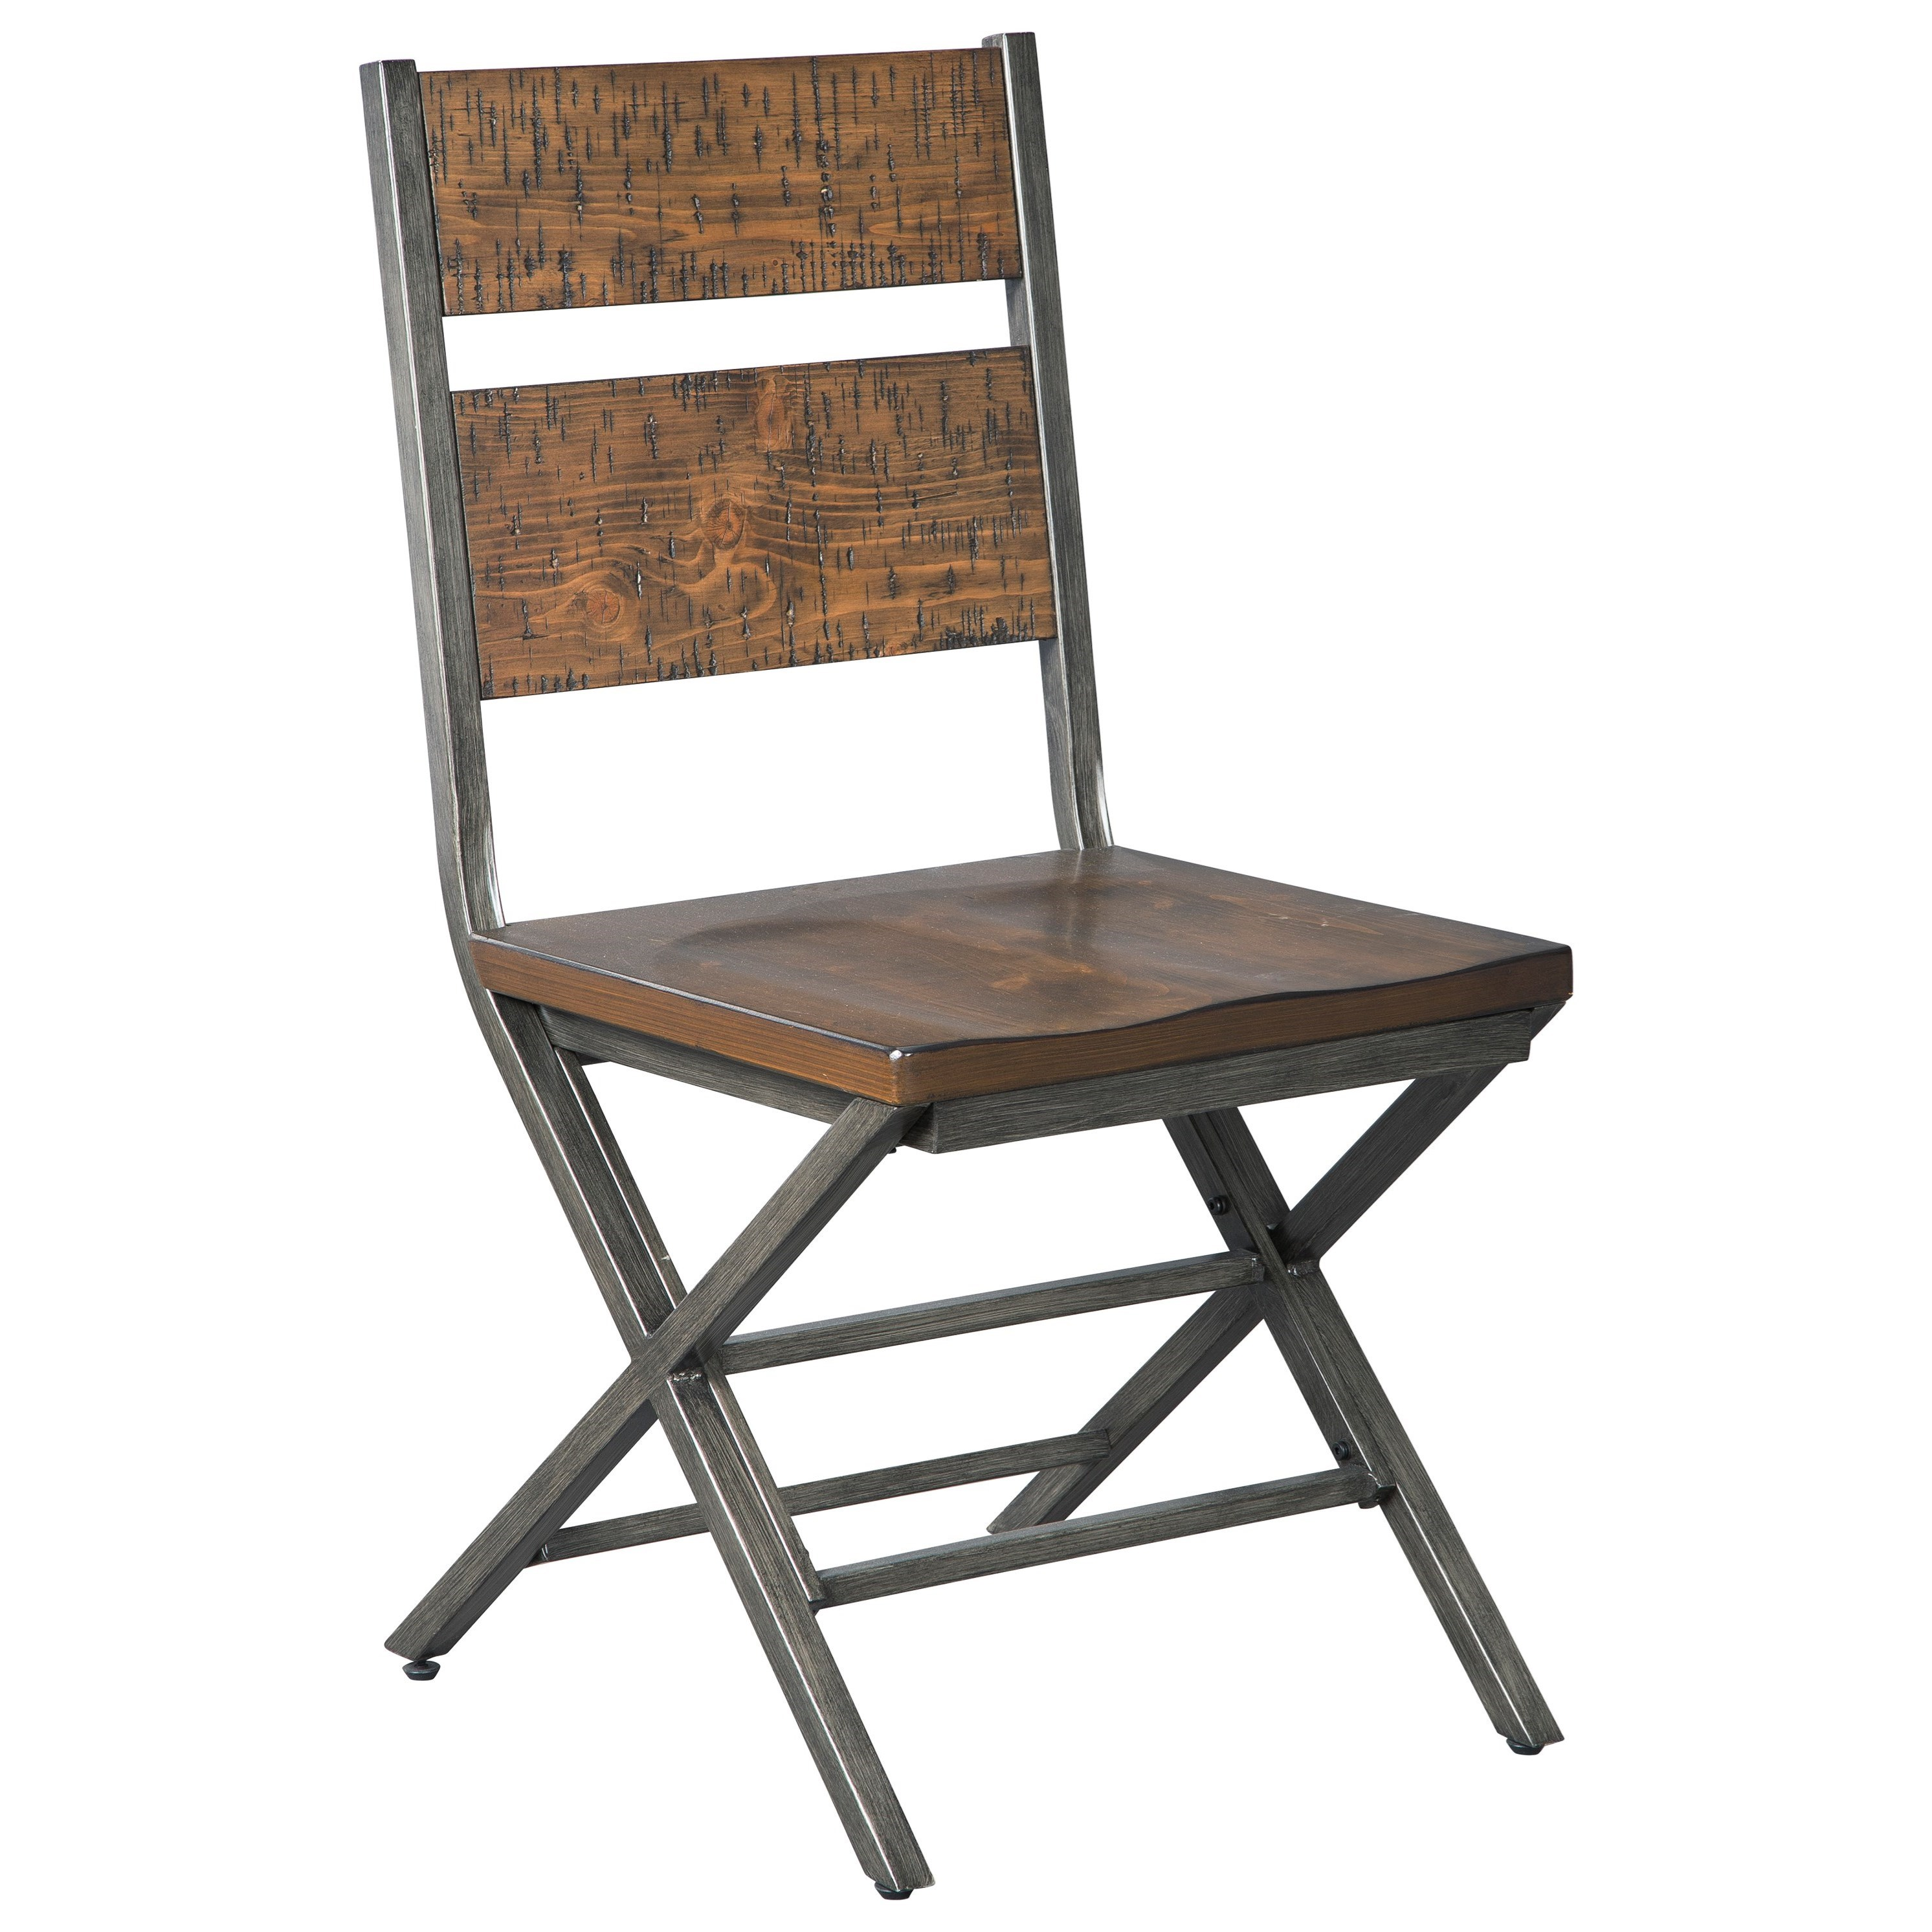 Wood Steel Dining Room Chairs: Distressed Pine Wood/Metal Dining Room Chair By Signature